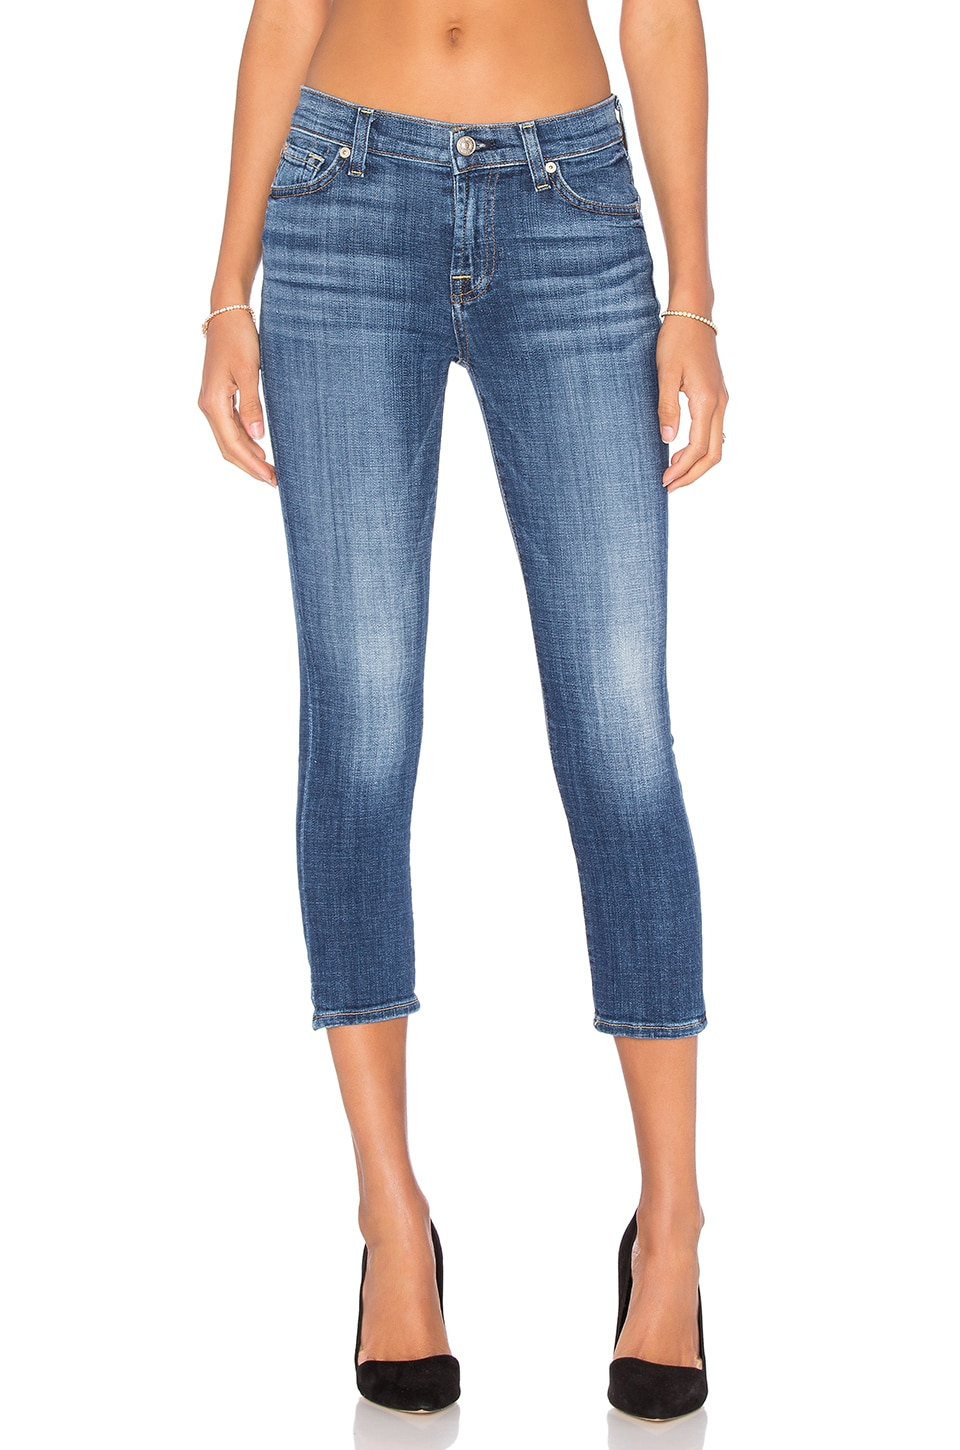 7 For All Mankind JEAN CROPPED THE CAPRI